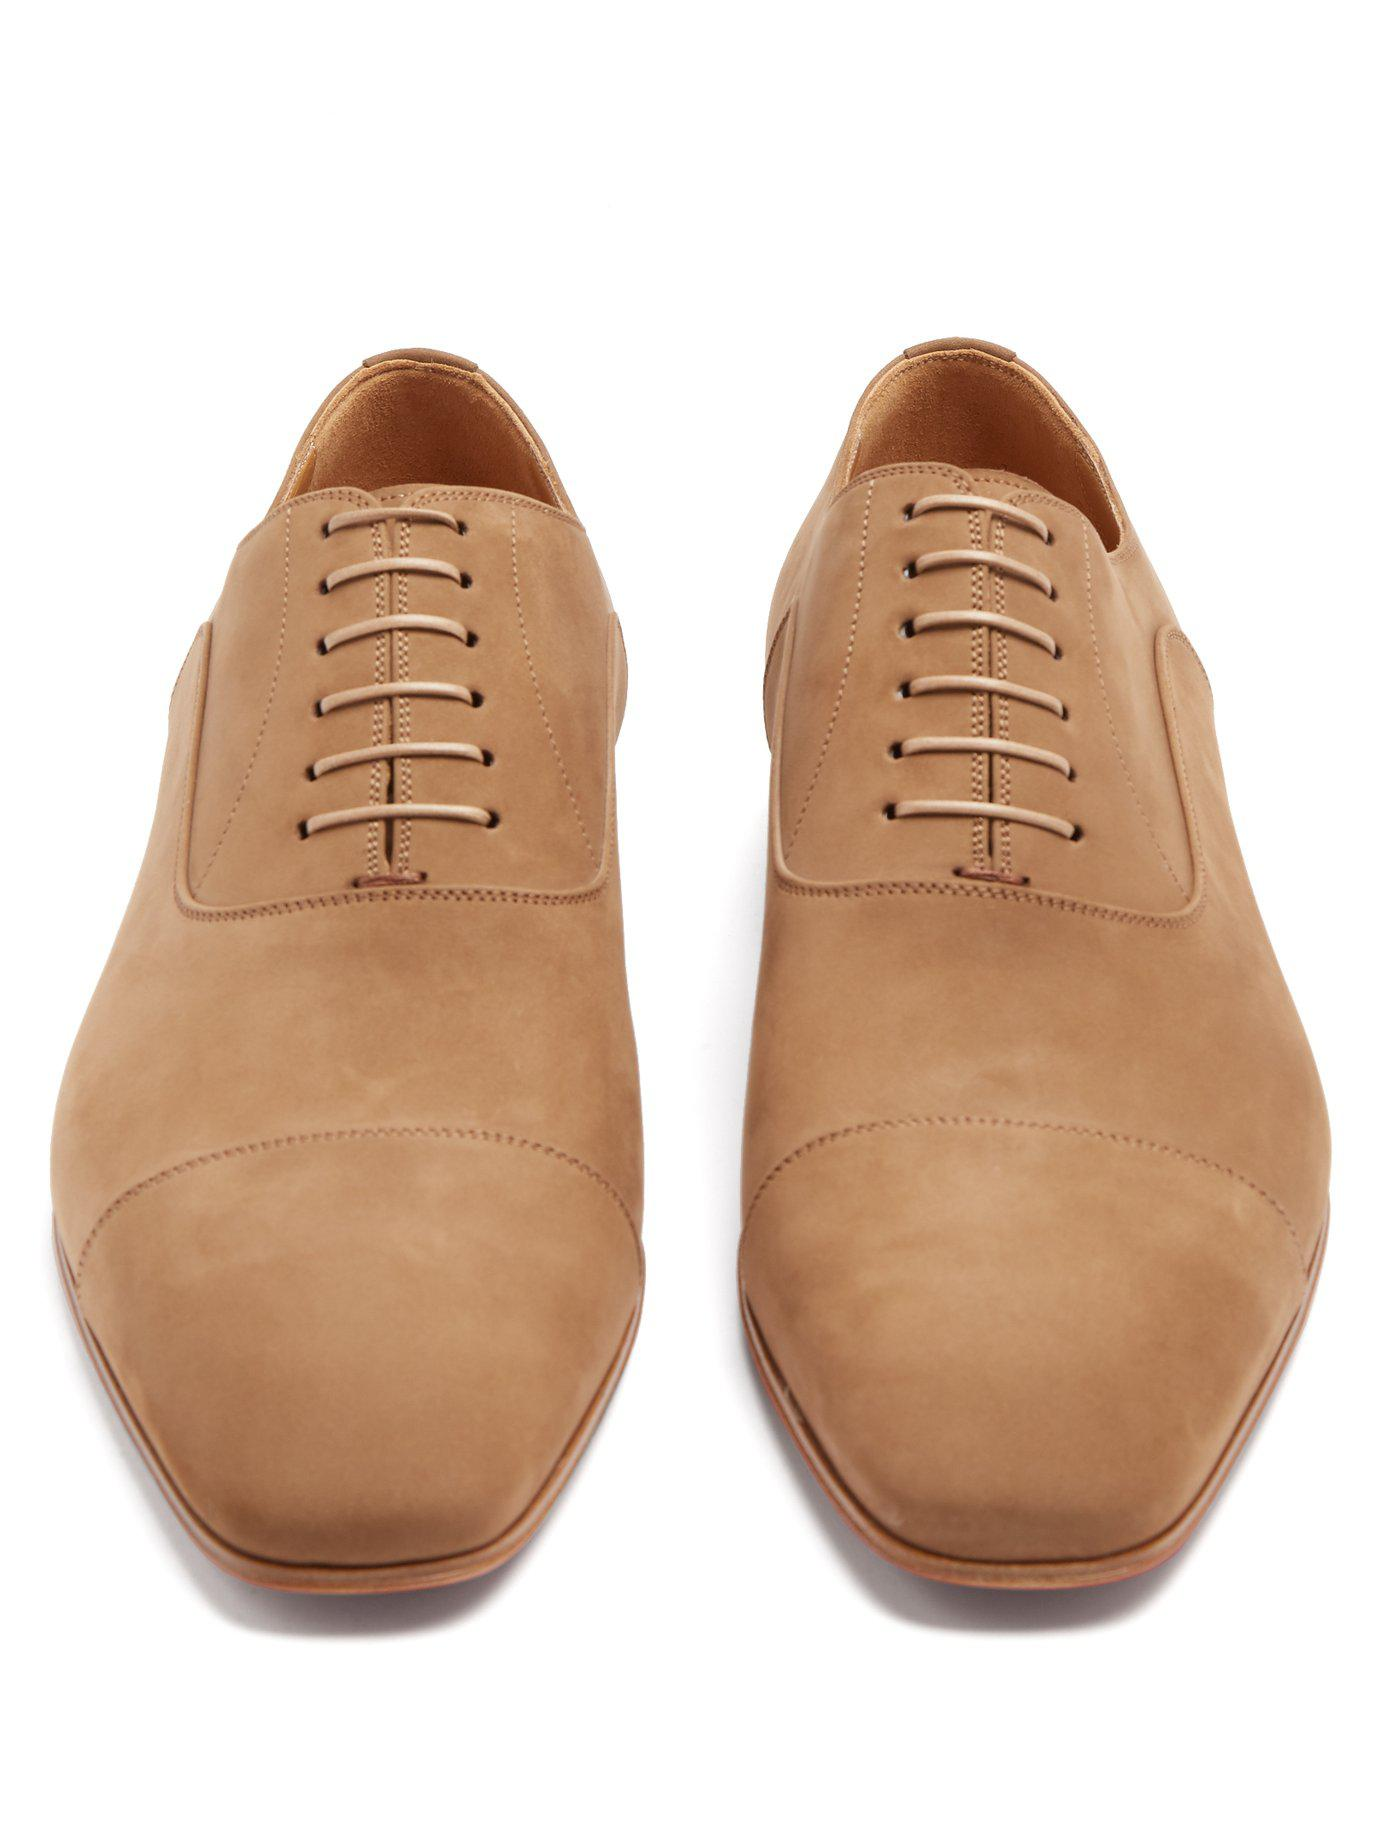 70c9a167938 Christian Louboutin - Natural Greggo Suede Oxford Shoes for Men - Lyst.  View fullscreen